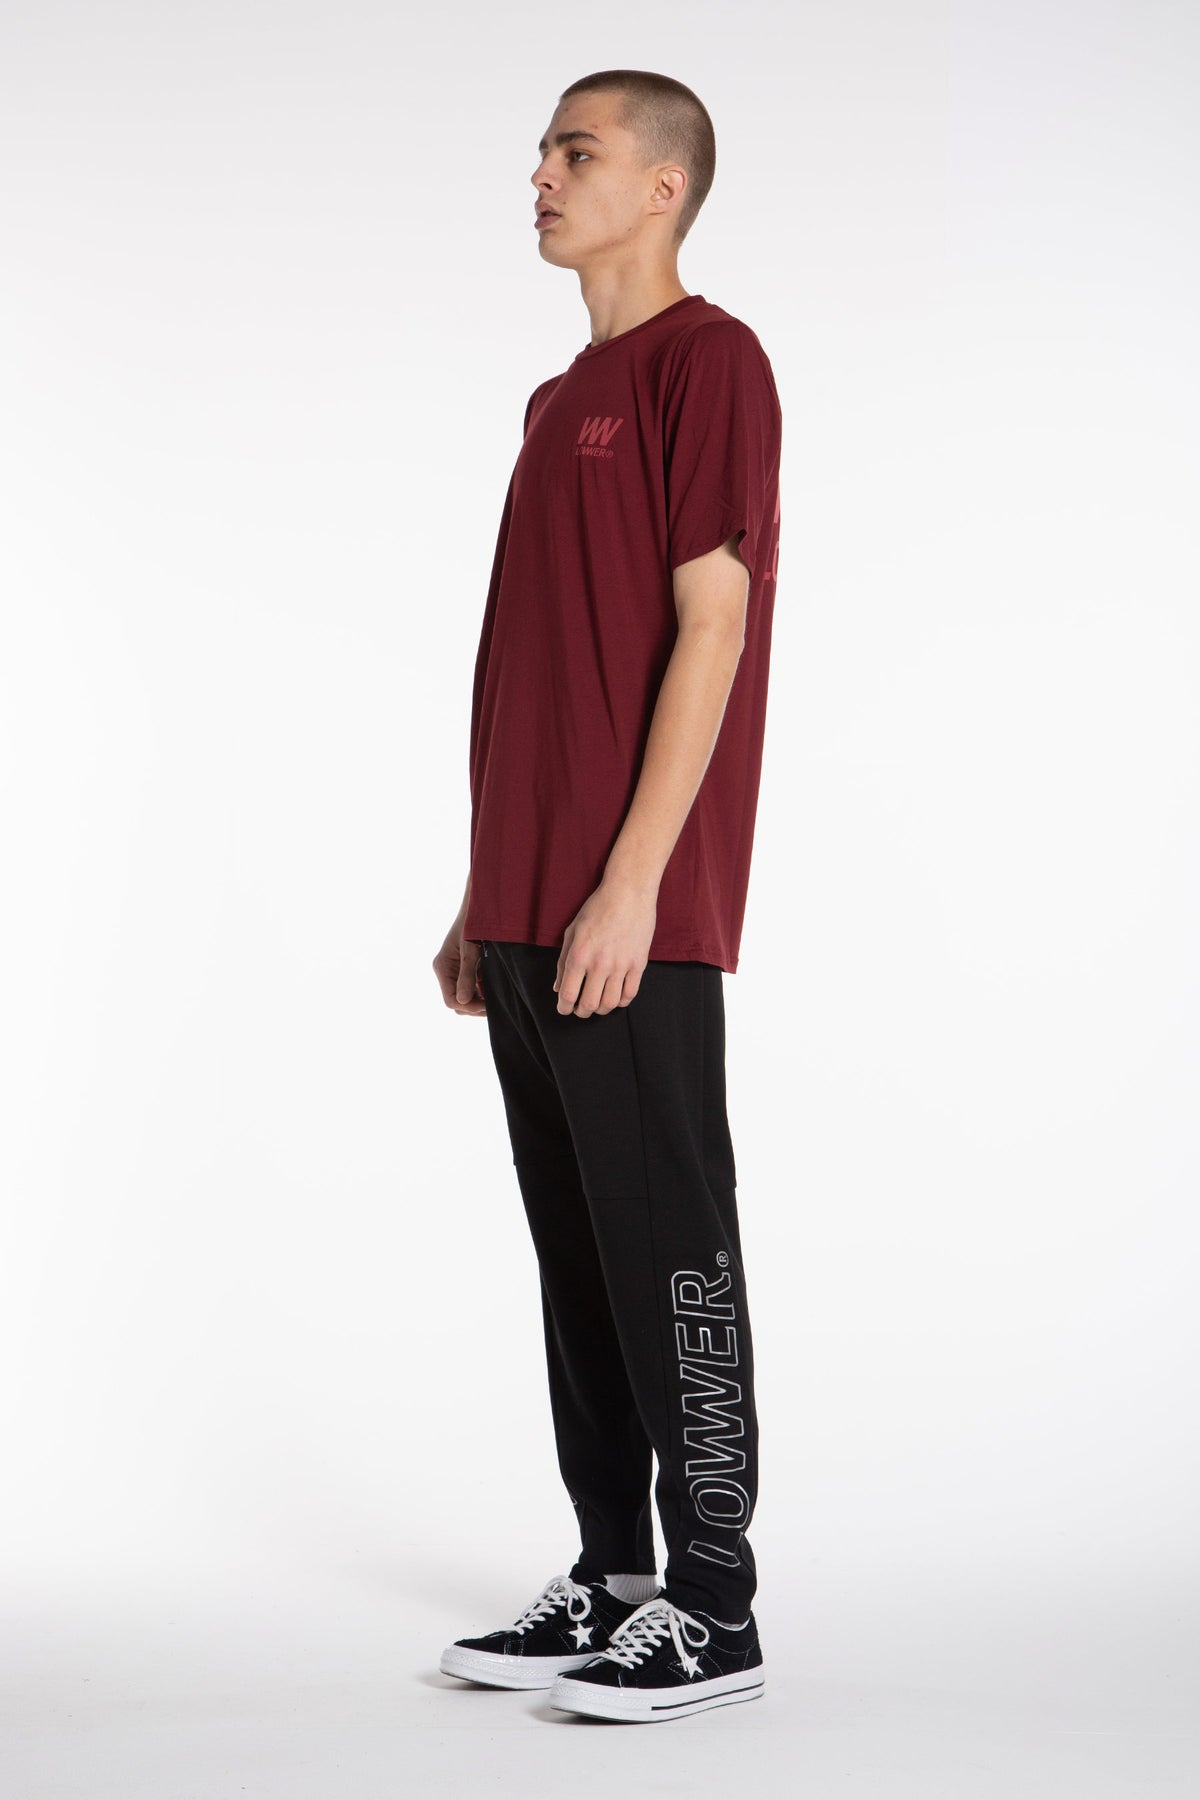 Double Charger Field Tee - Maroon